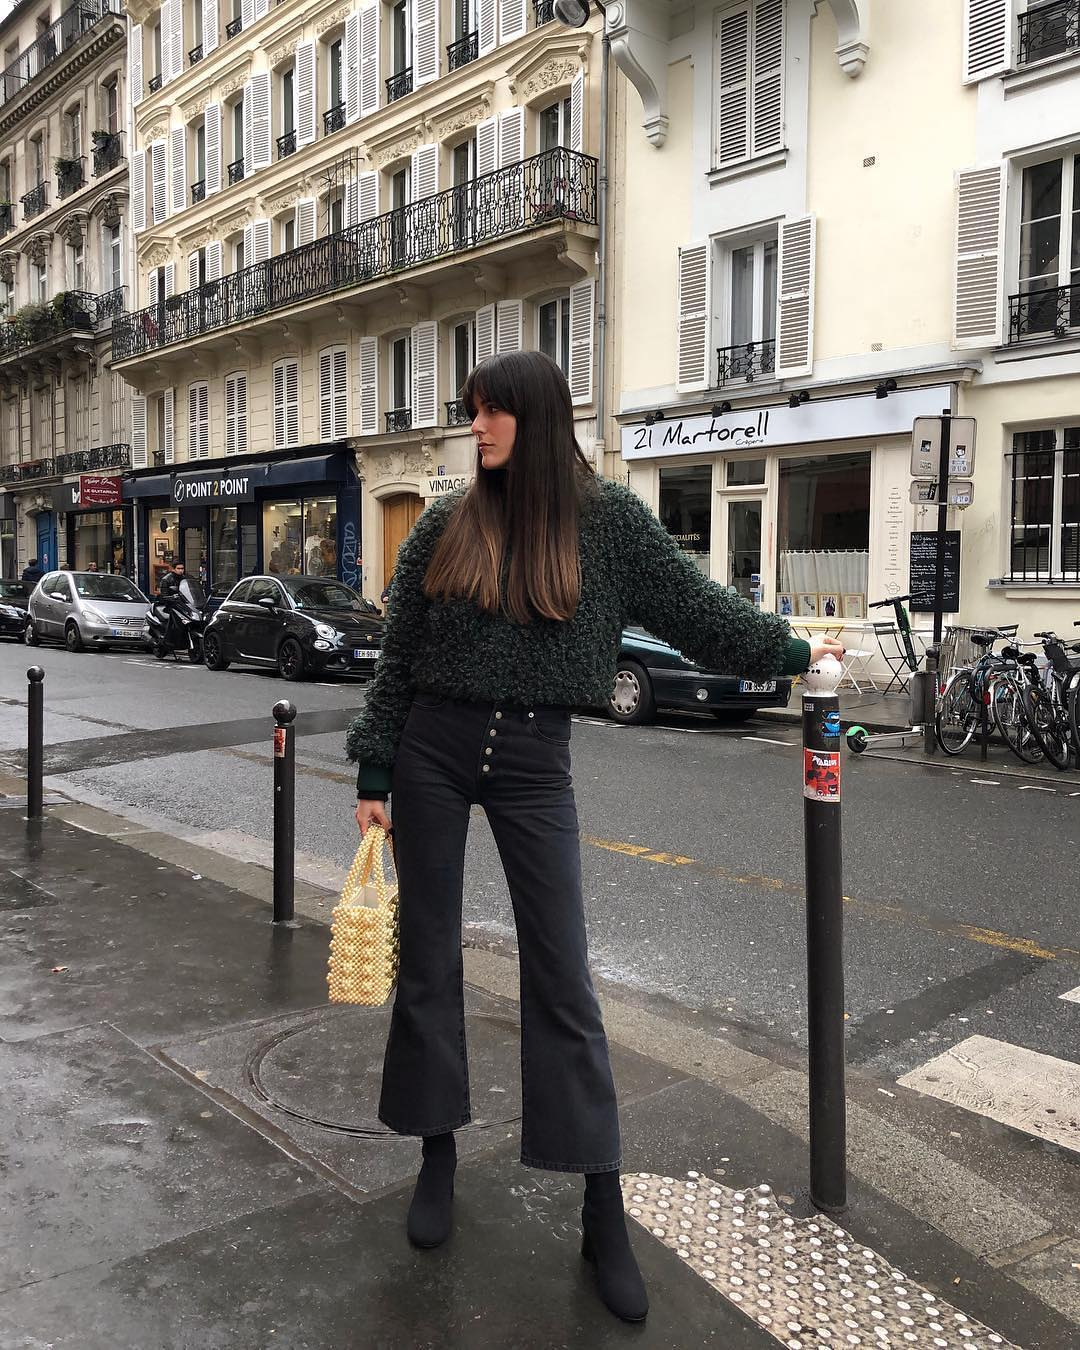 Mohair Sweater And Flared Crop Jeans For Parisian Chic Walk 2019